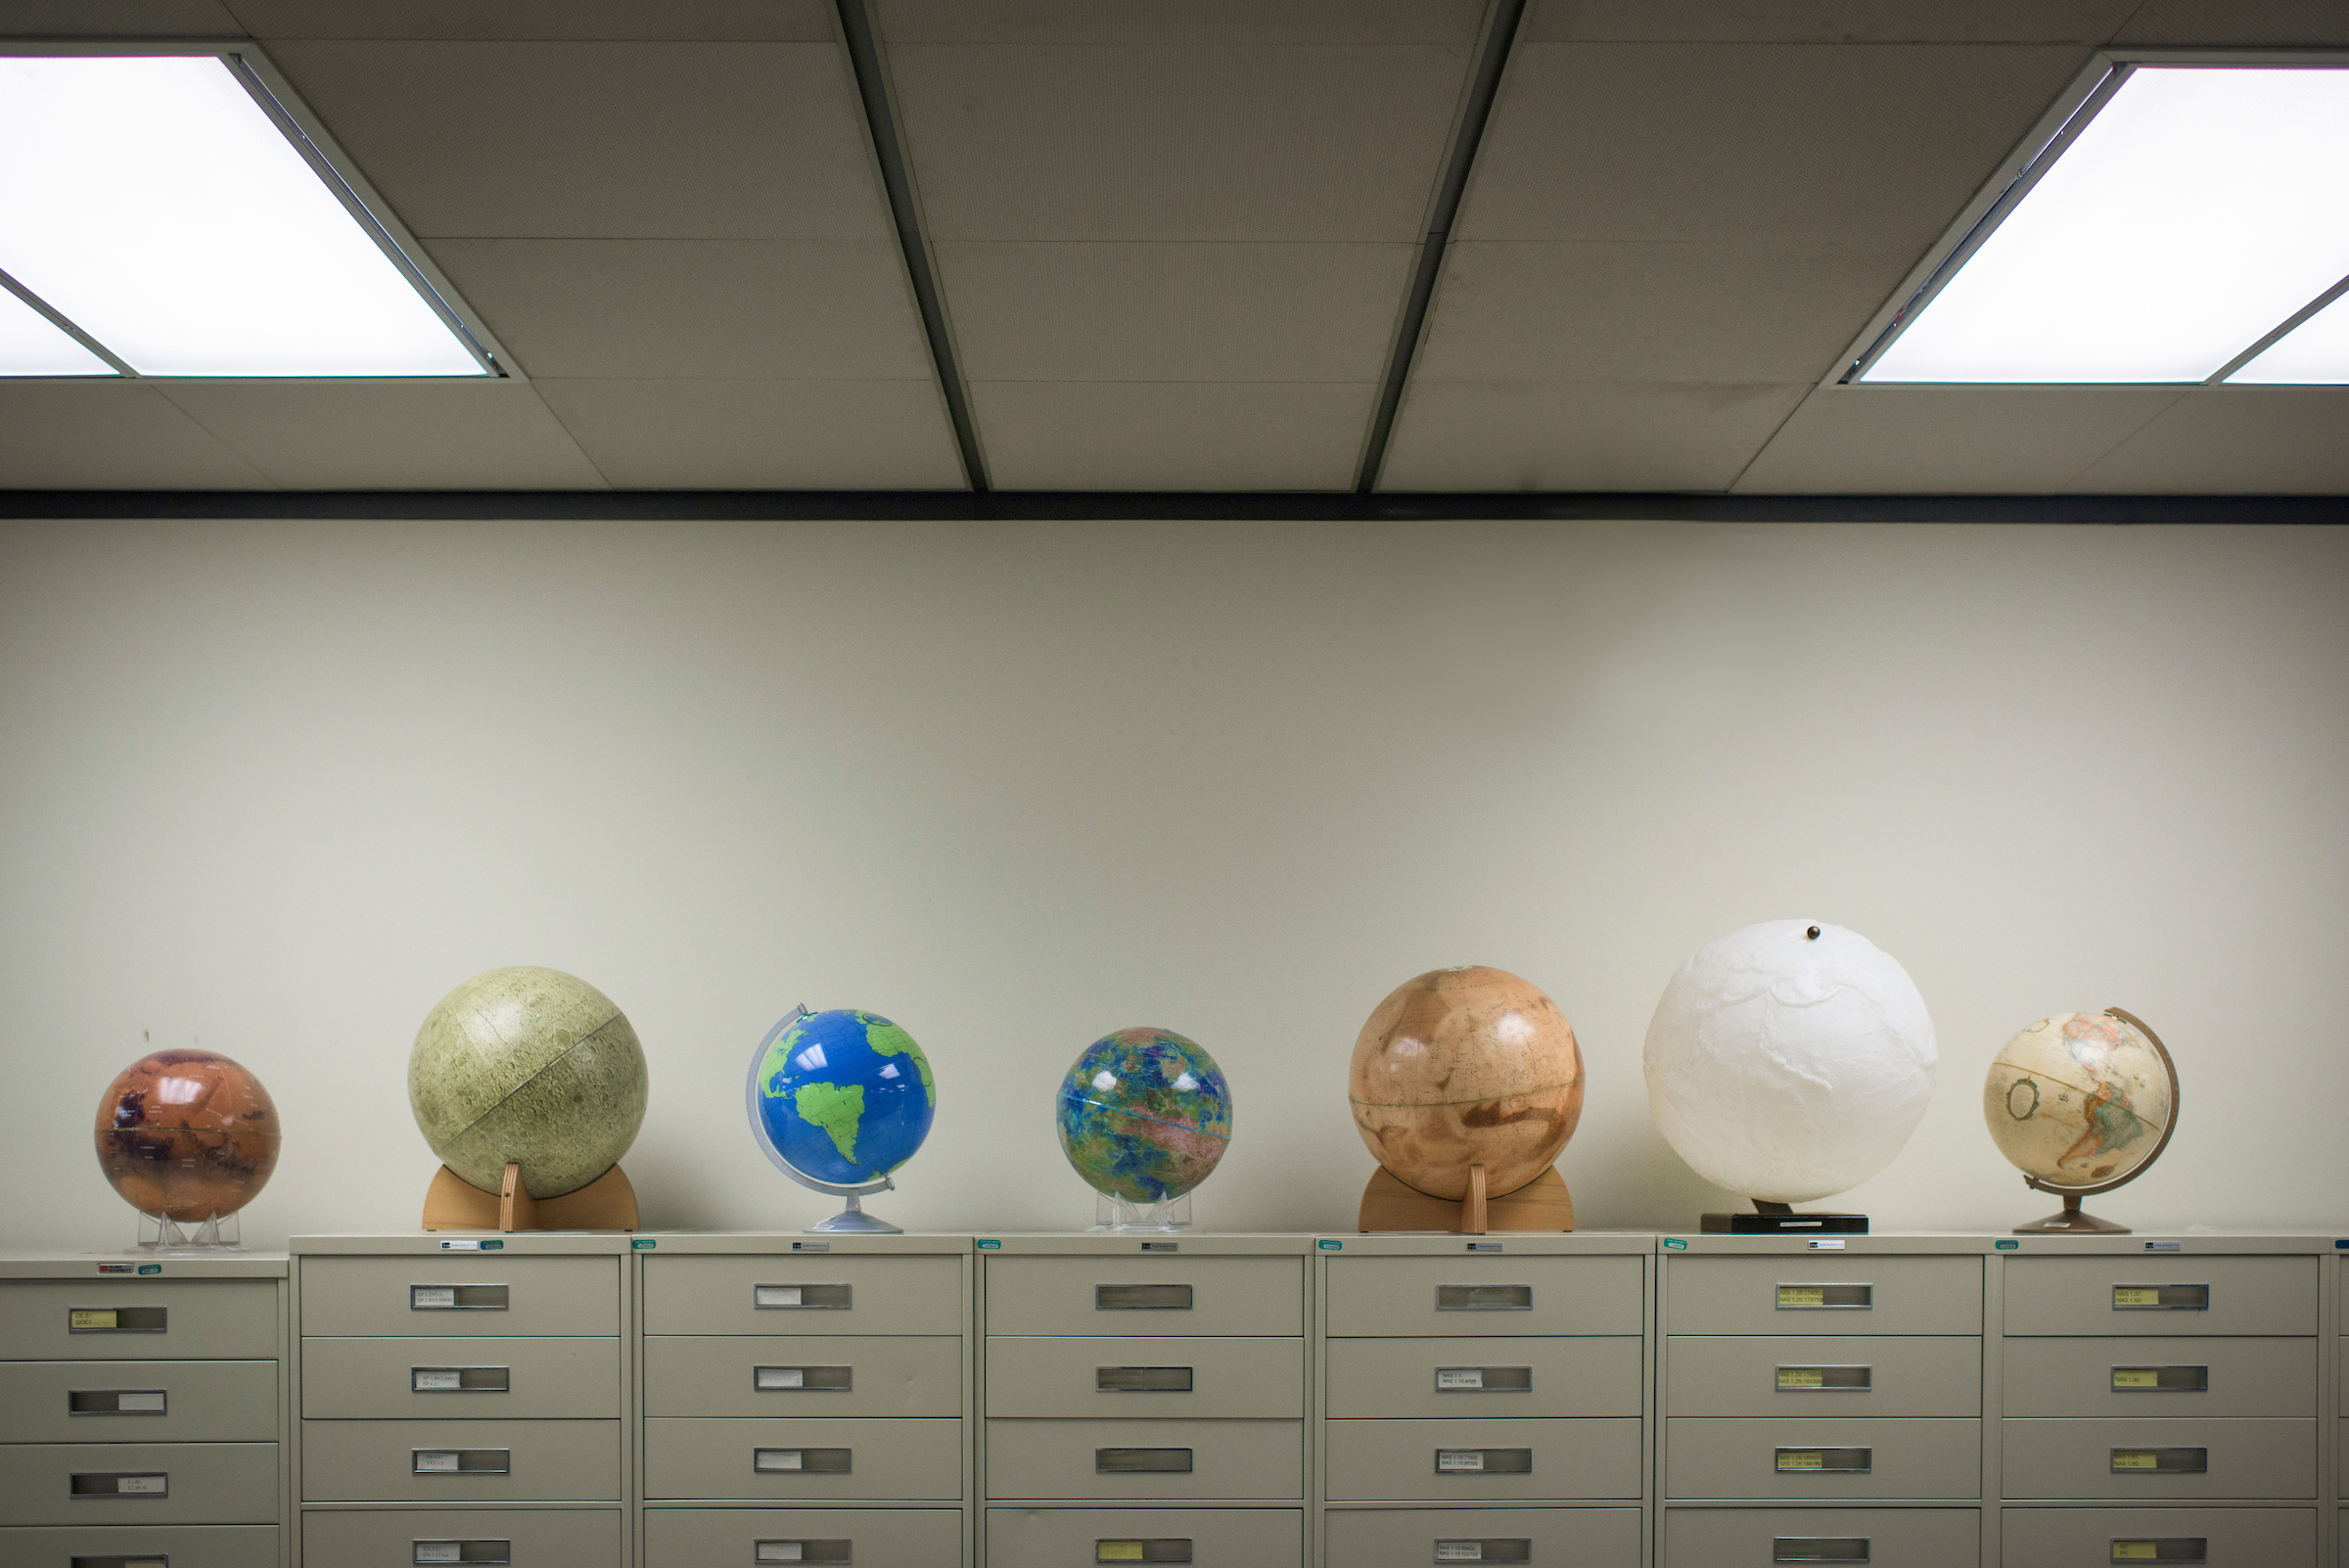 Fifth Floor Maps and Globes, Alden Library